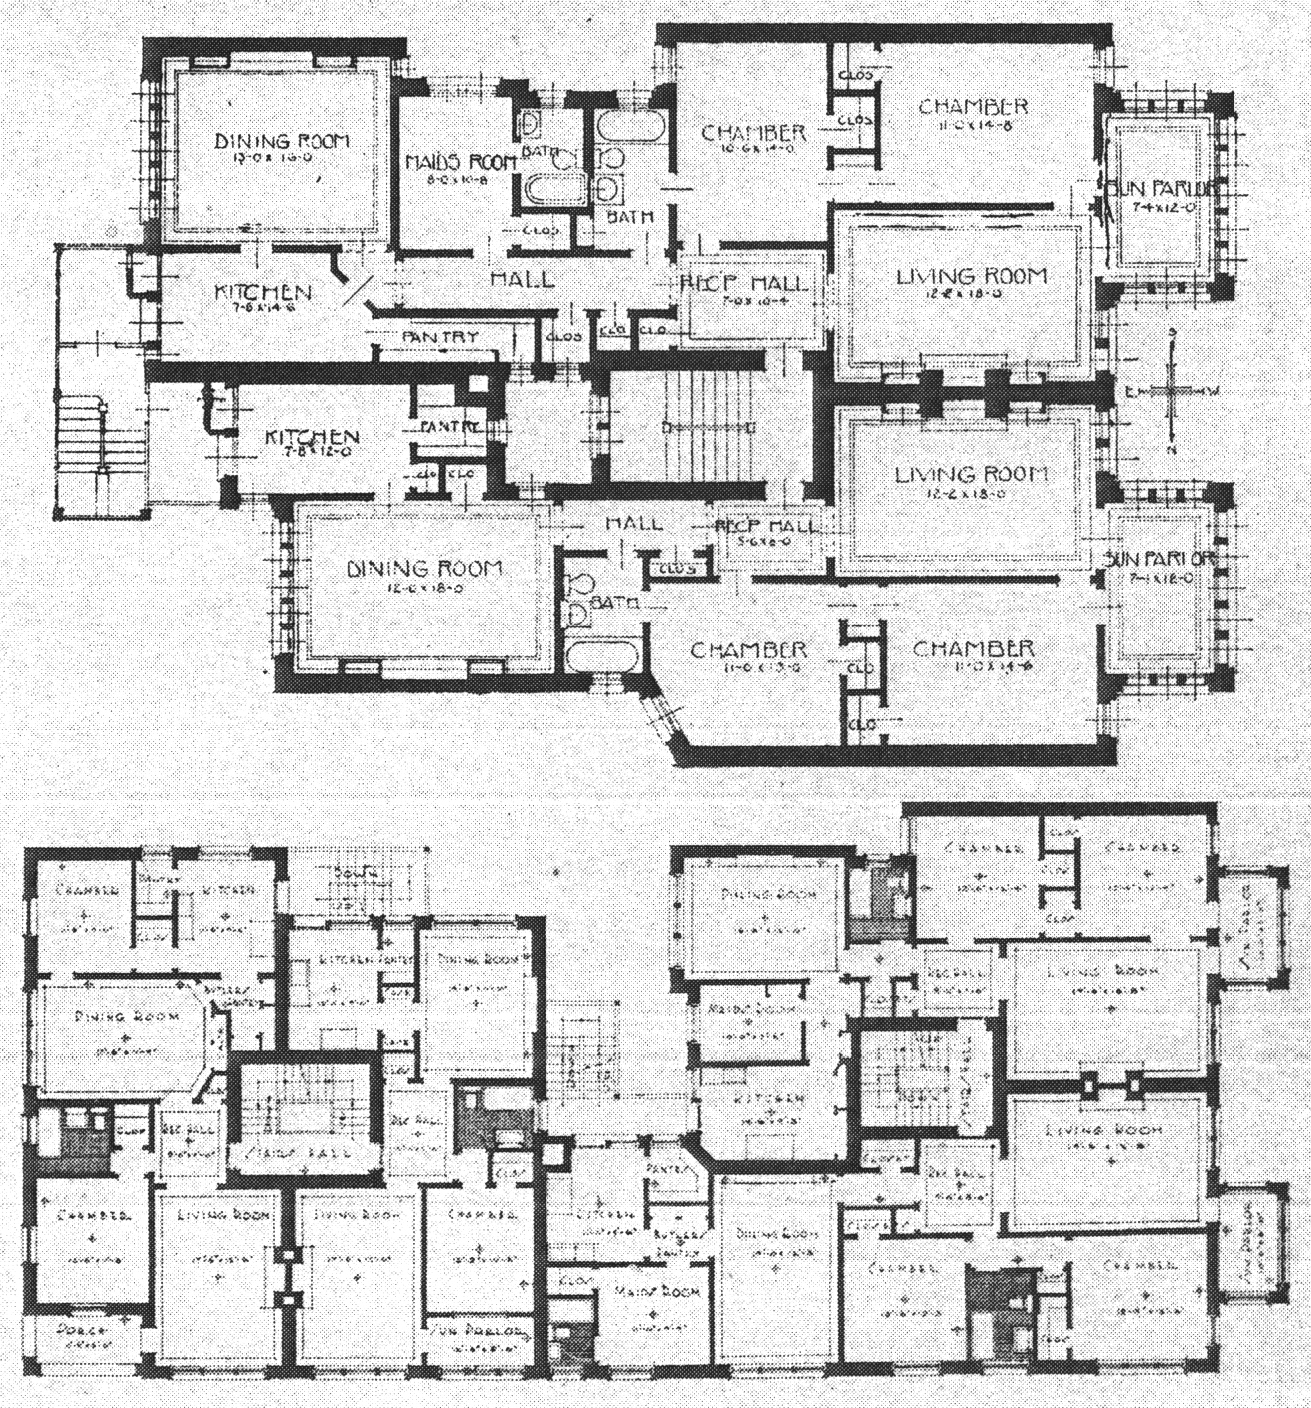 572449802611514907 additionally 50 Square Meter House Floor Plan also 4 Story Modern Homes together with 052g 0008 likewise Sims 3 Small Family Homes. on modern townhouse plans